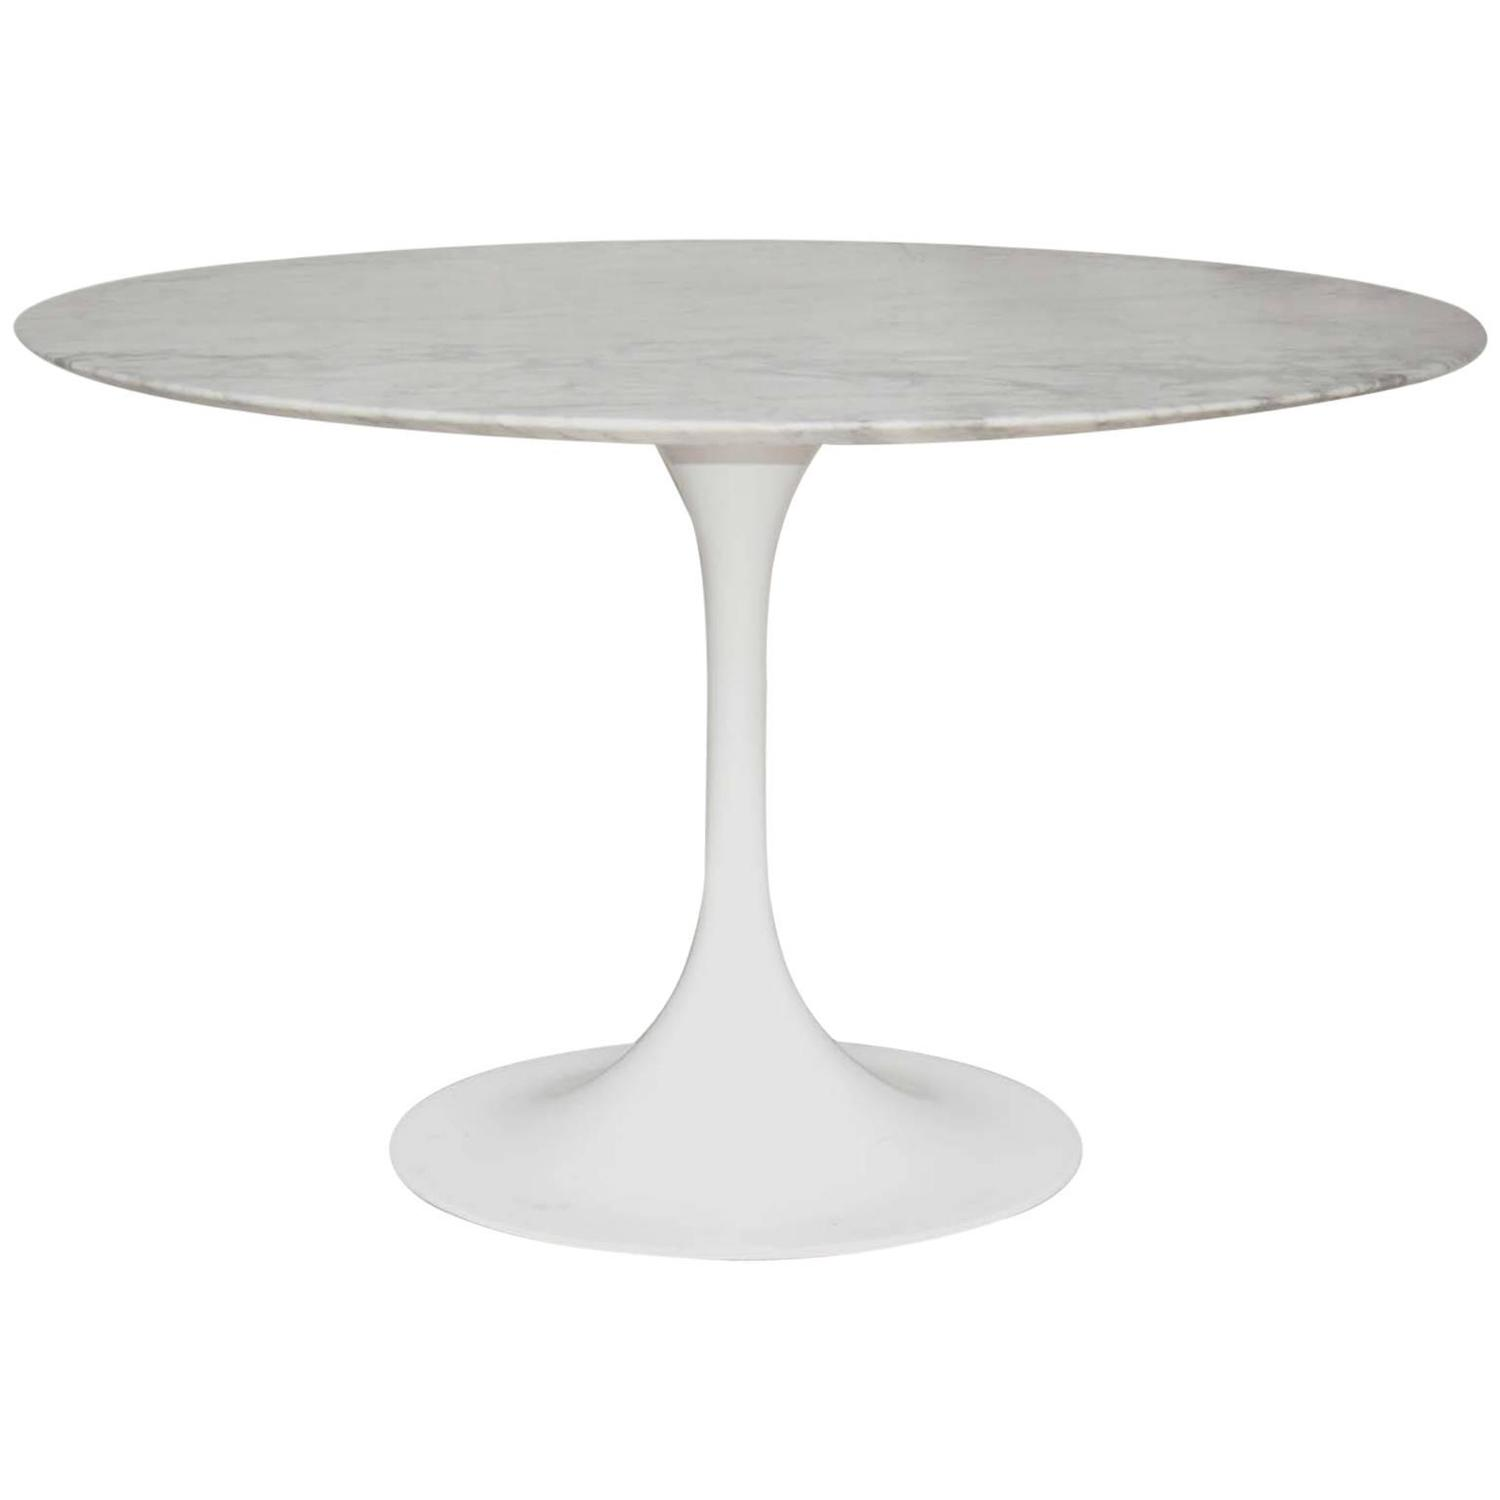 Eero saarinen style tulip dining table marble top at 1stdibs for Tulip dining table